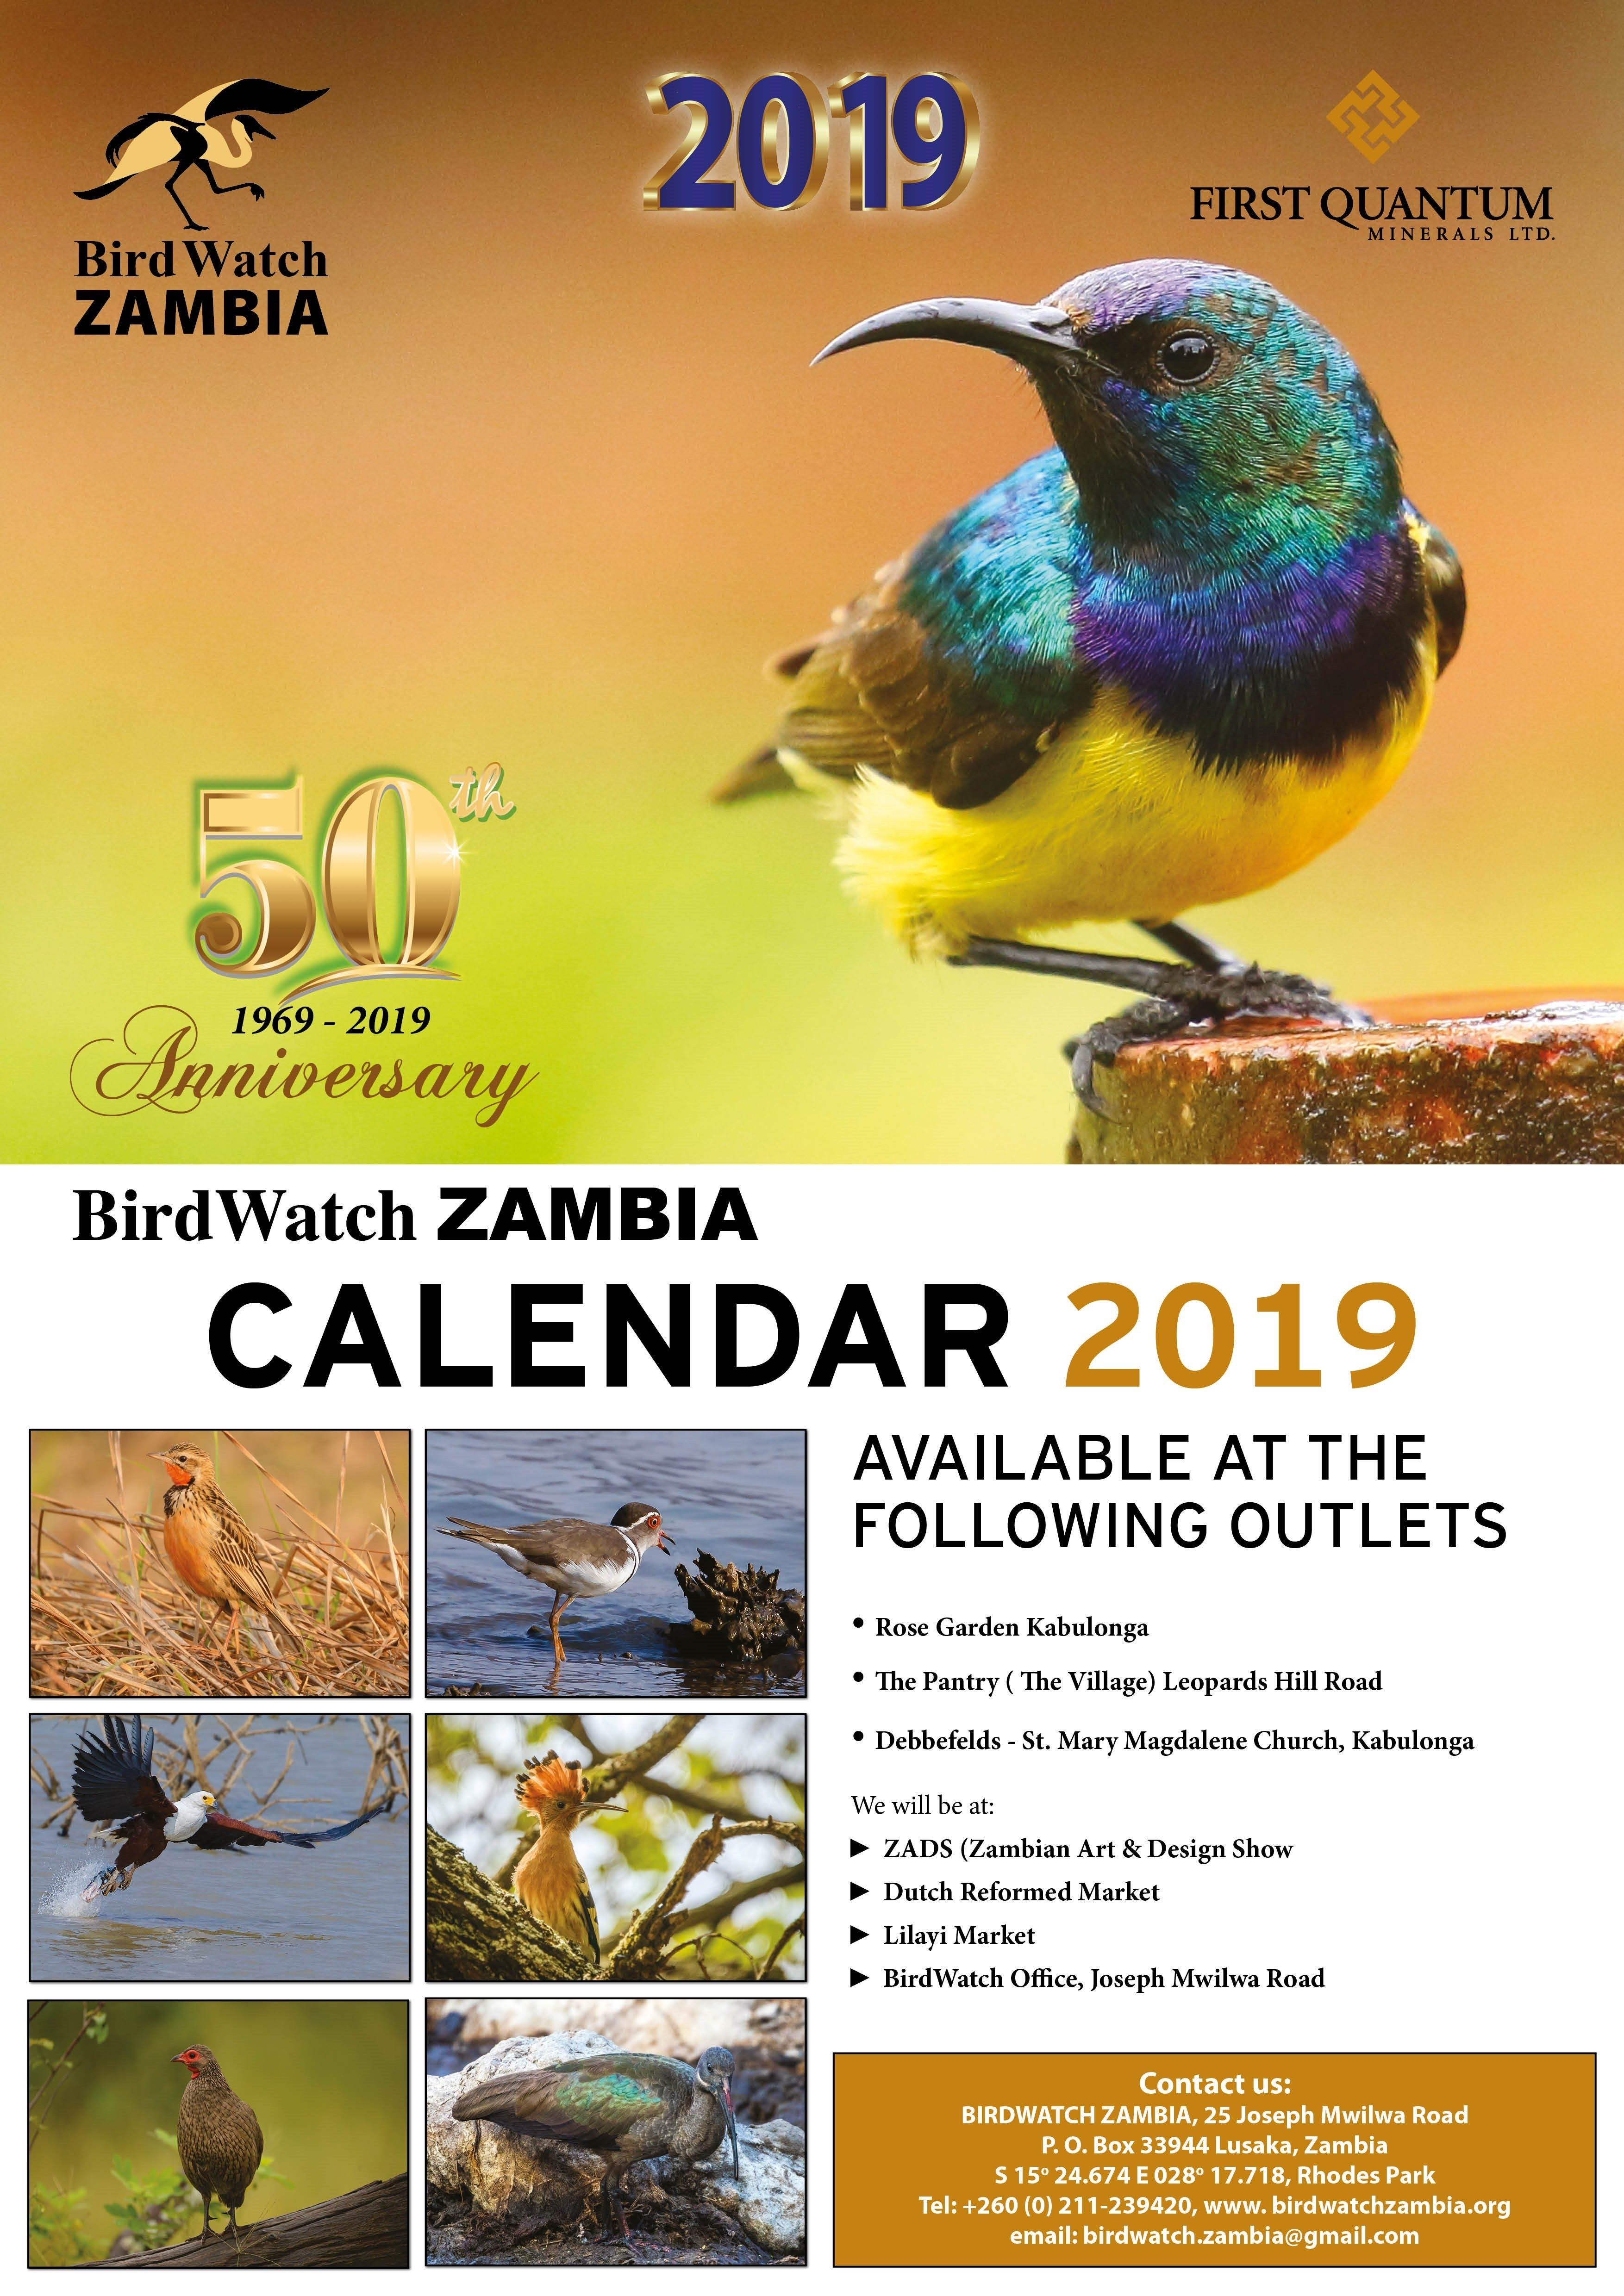 13.11.2018 - Birdwatch 2019 Calendar Now Available » Ad-Dicts Ads Calendar 2019 Zambia